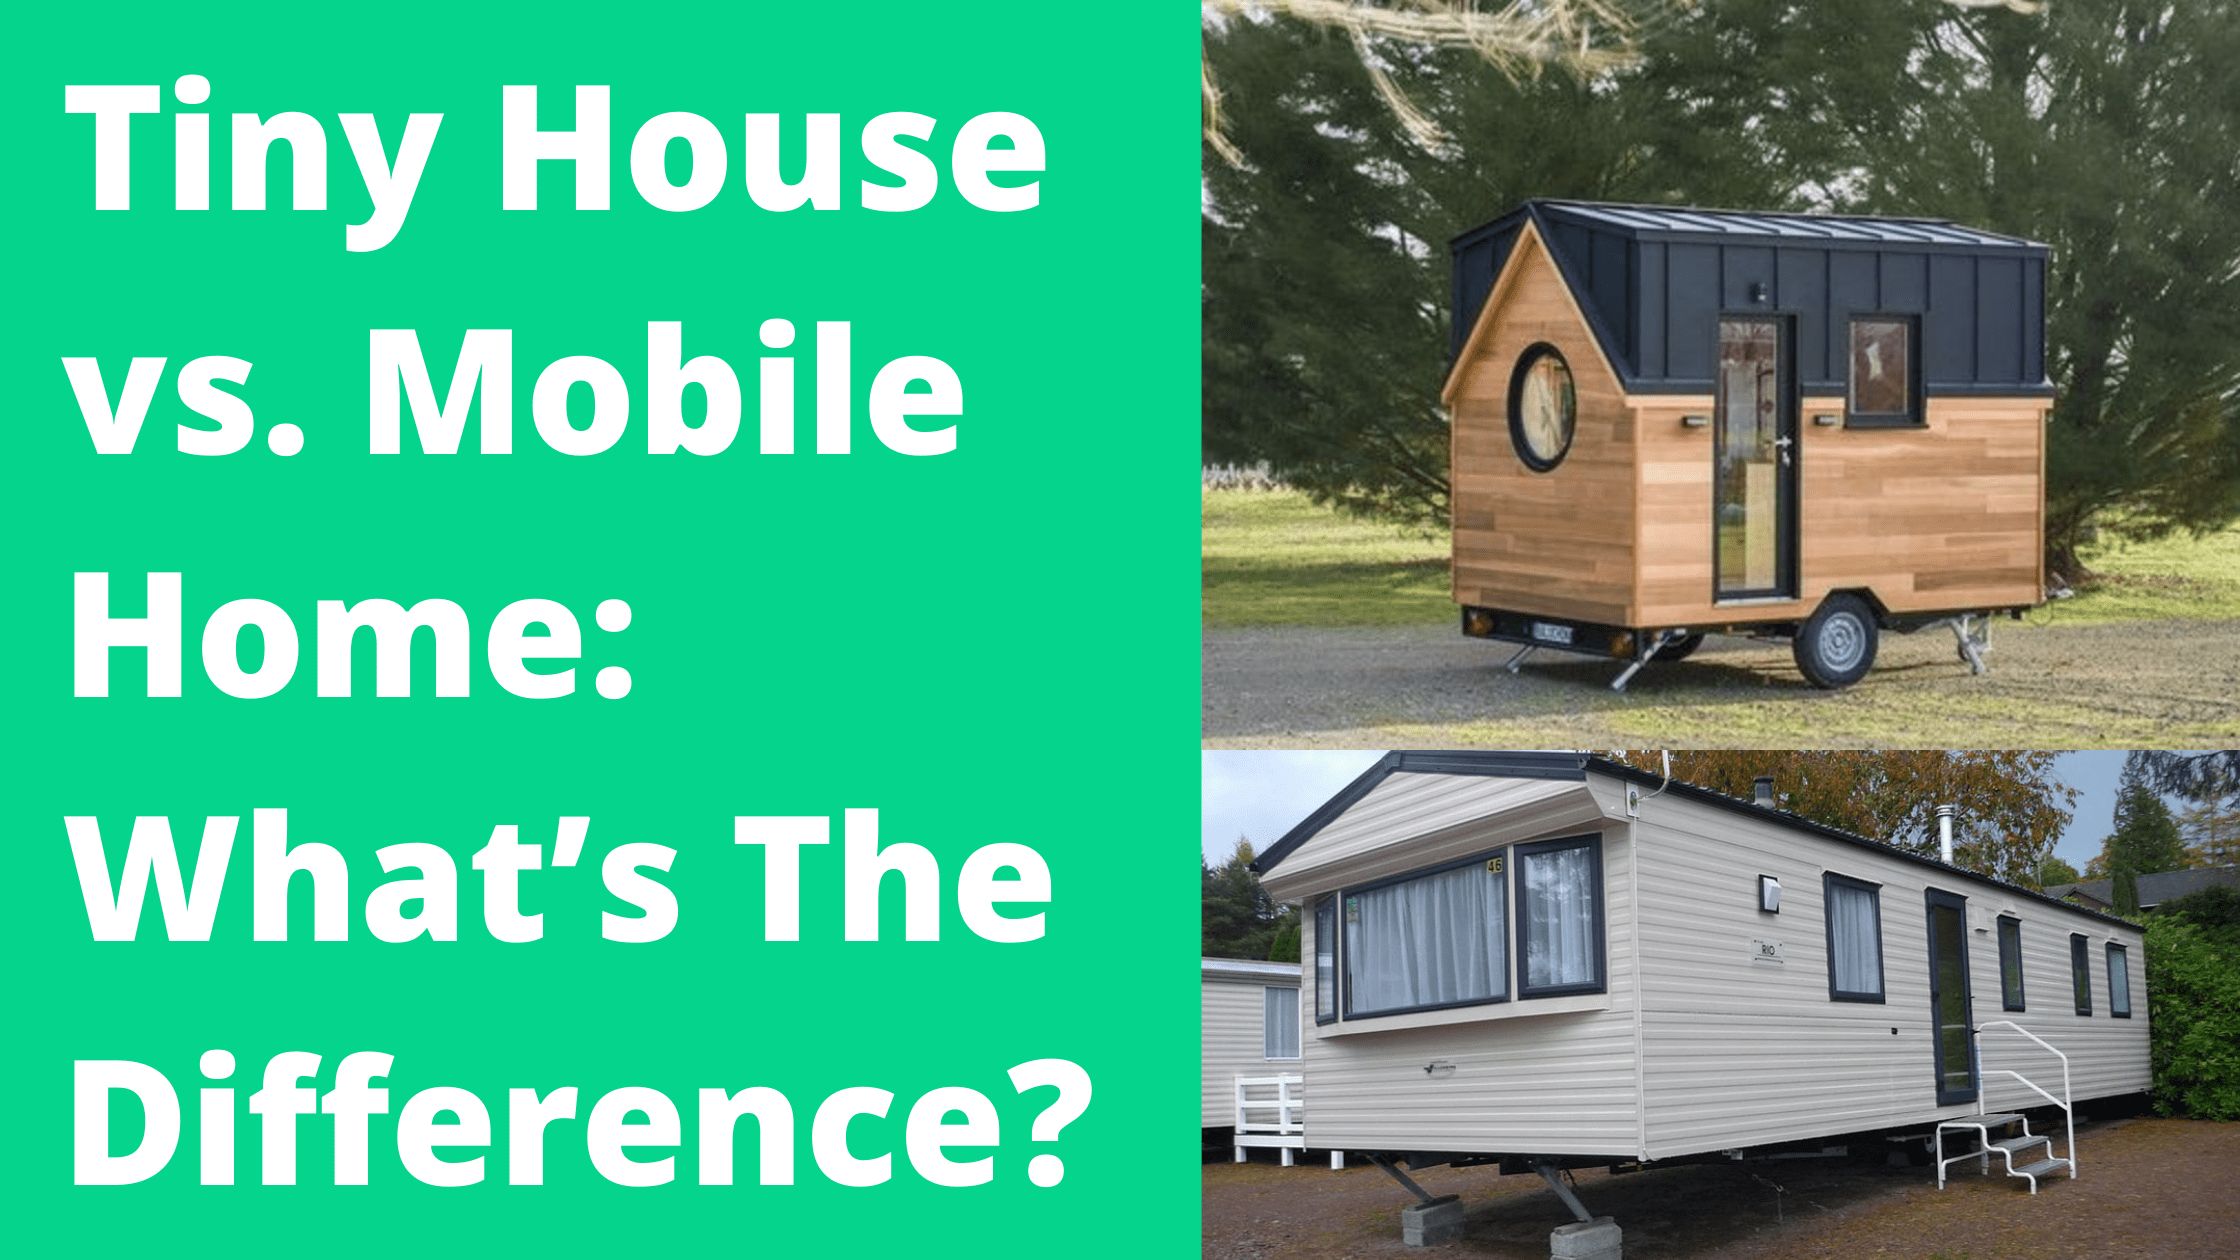 Tiny House vs. Mobile Home